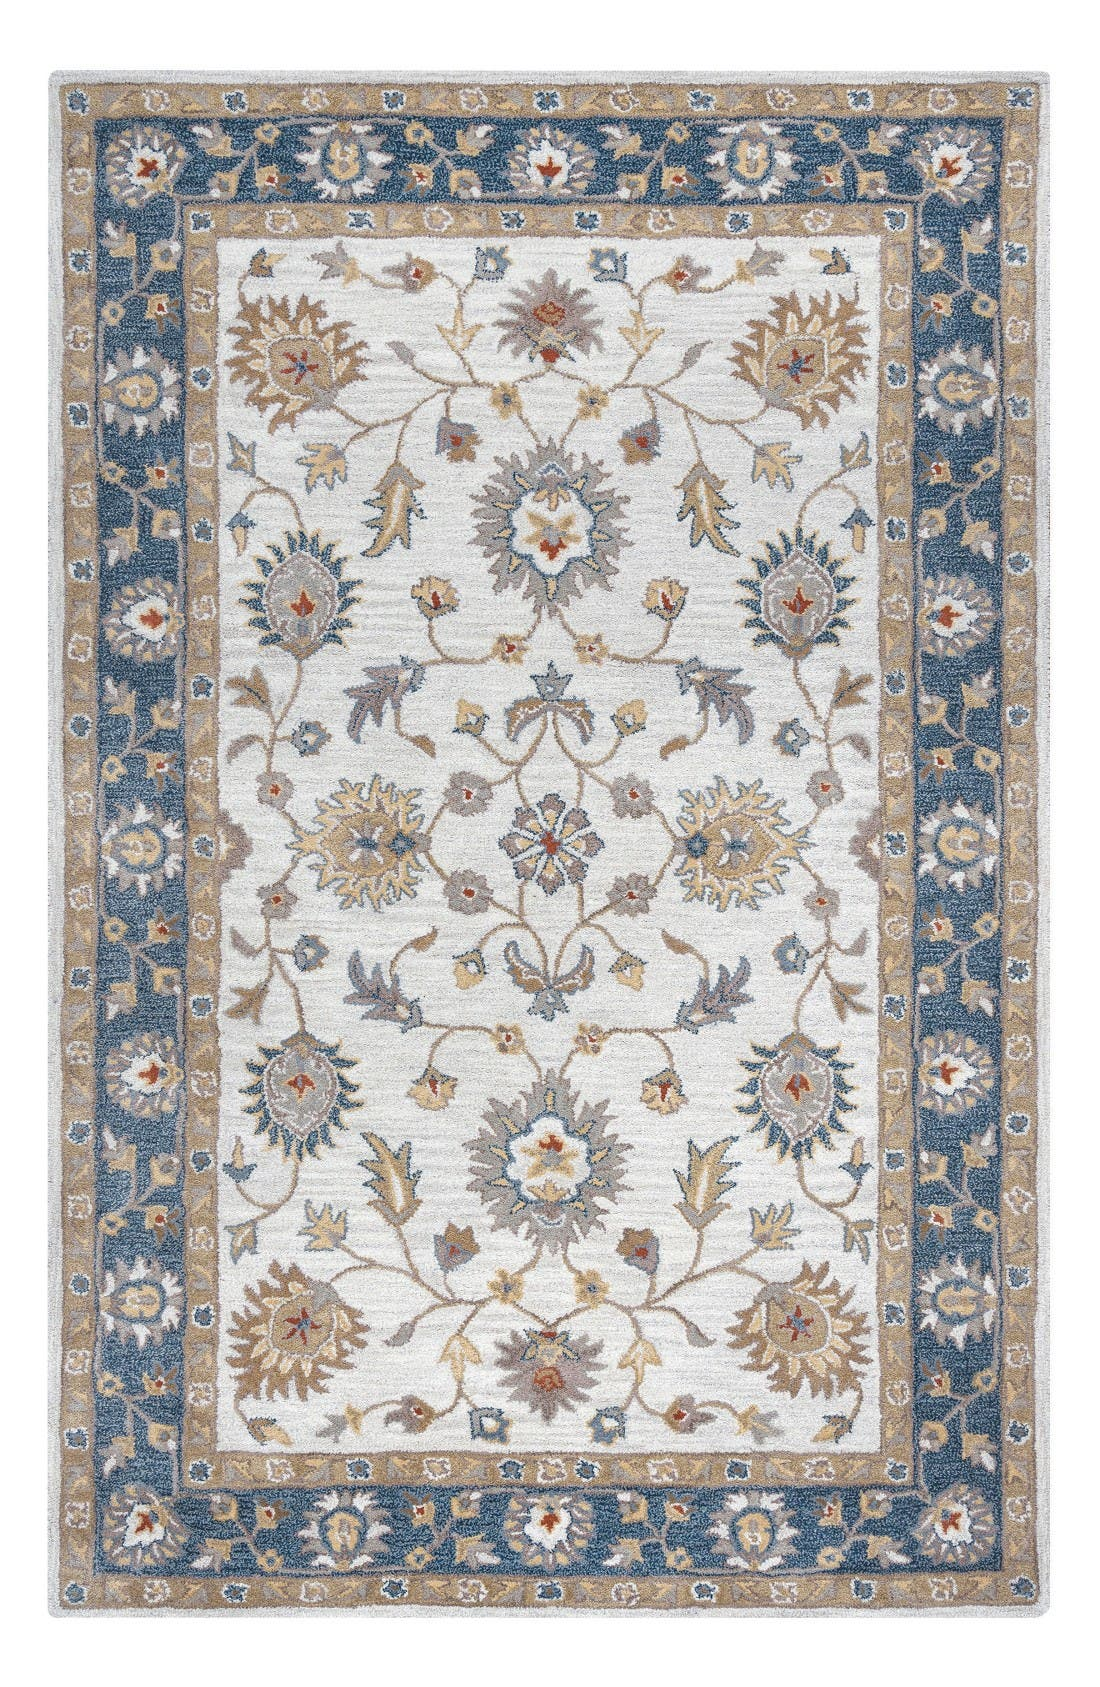 Alternate Image 1 Selected - Rizzy Home 'Valintino Border' Hand Tufted Wool Area Rug